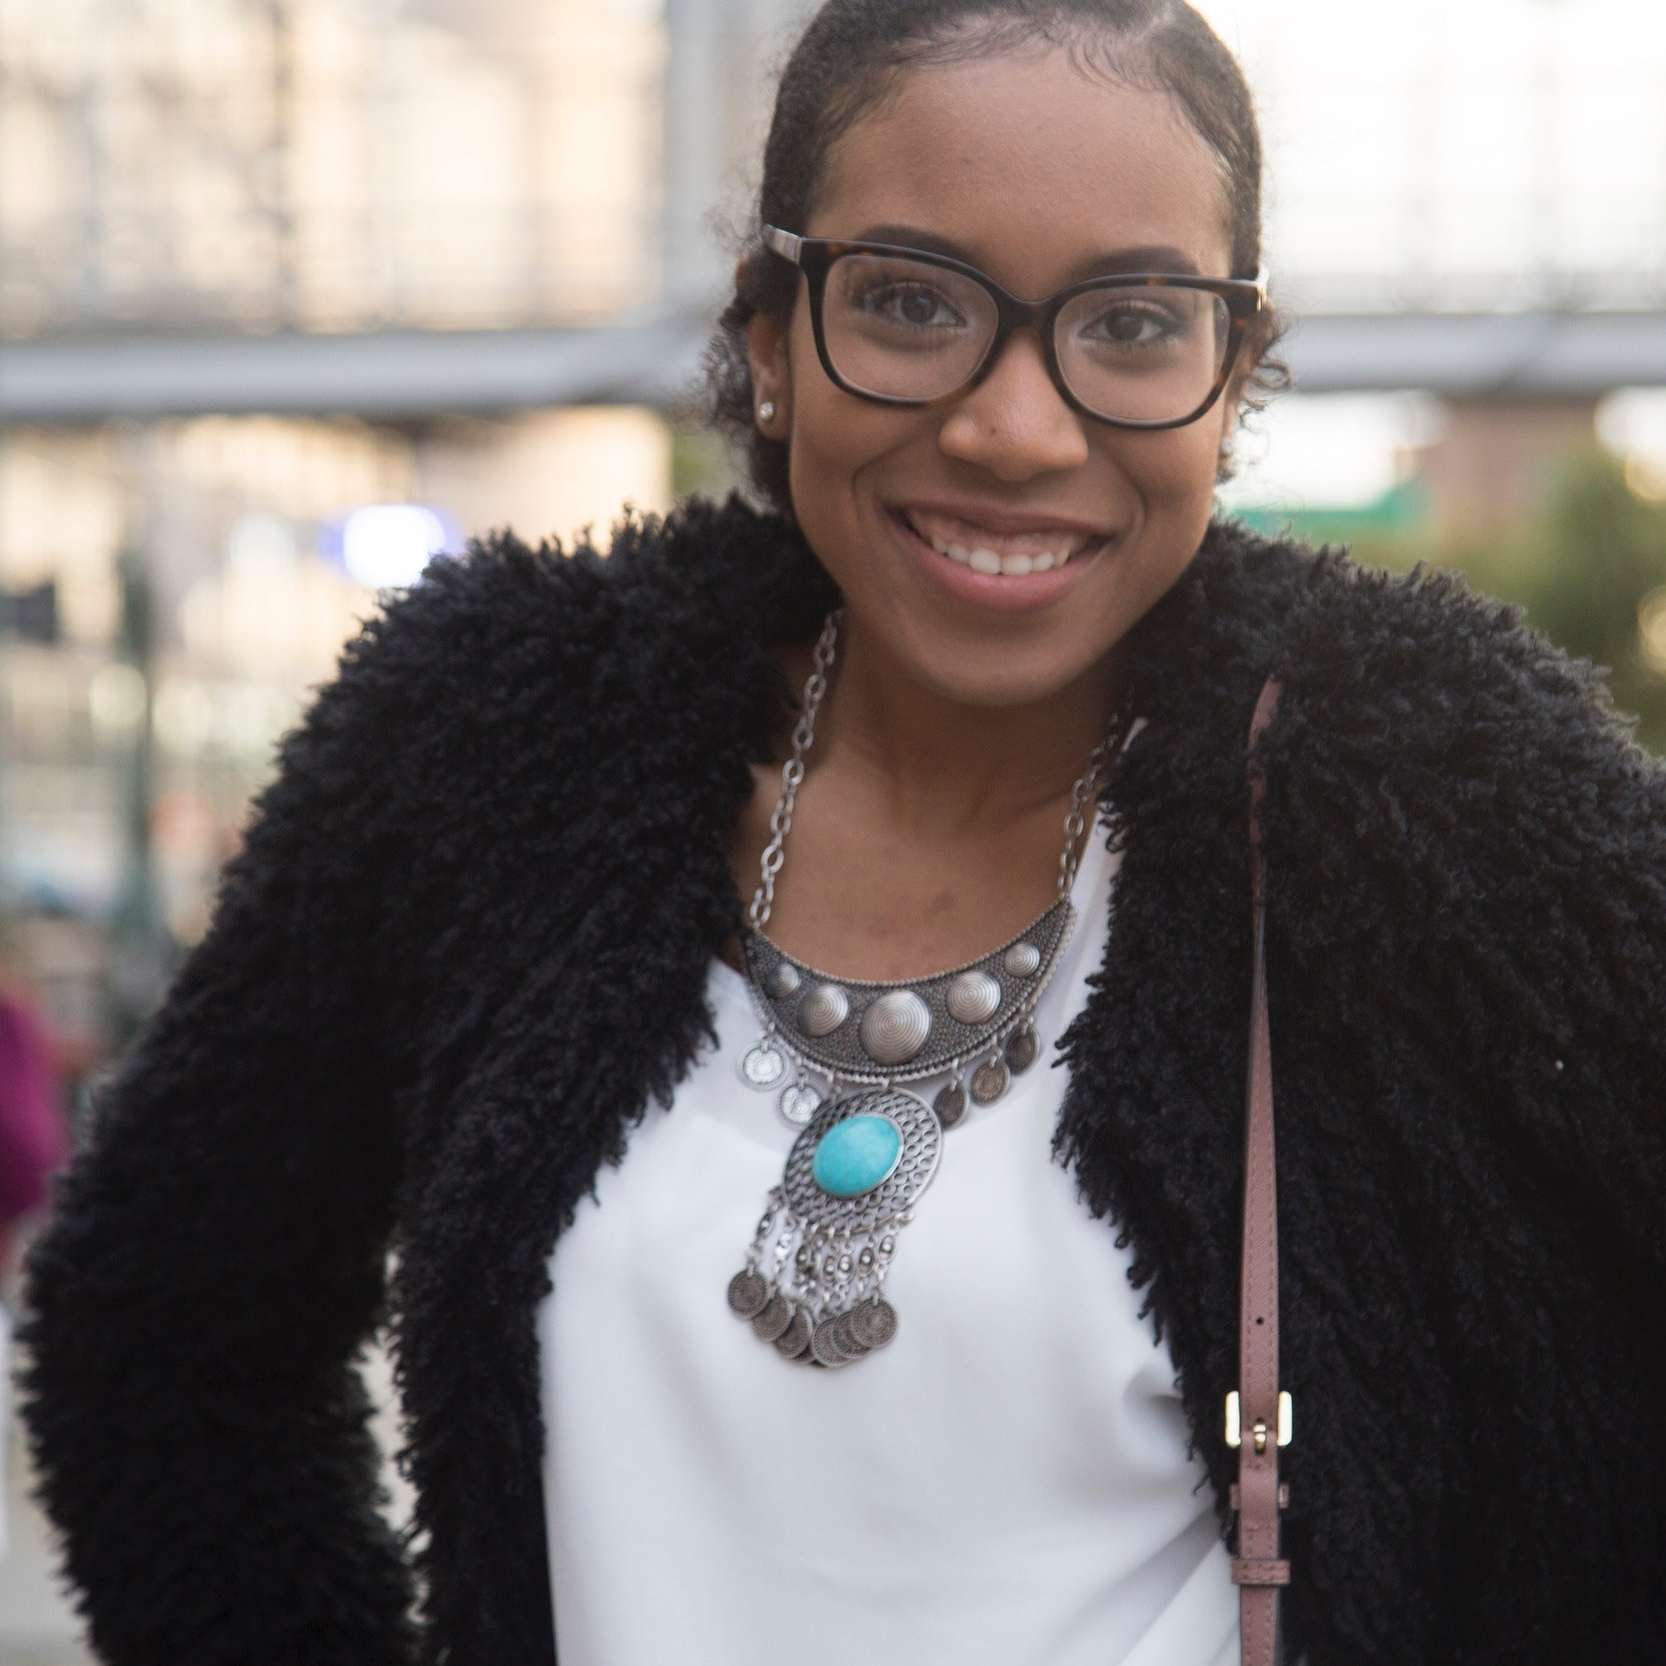 Social Media Coordinator  Bre'Yana Williams  Bre'Yana is a recent graduate from Montclair State University with a Bachelors Degree in Communications & Media Arts. She has an extensive background in social media and digital editorial due to her four year involvement with the online publication Her Campus Media. In her free time, Bre'Yana can be found with a good book in hand or shopping!